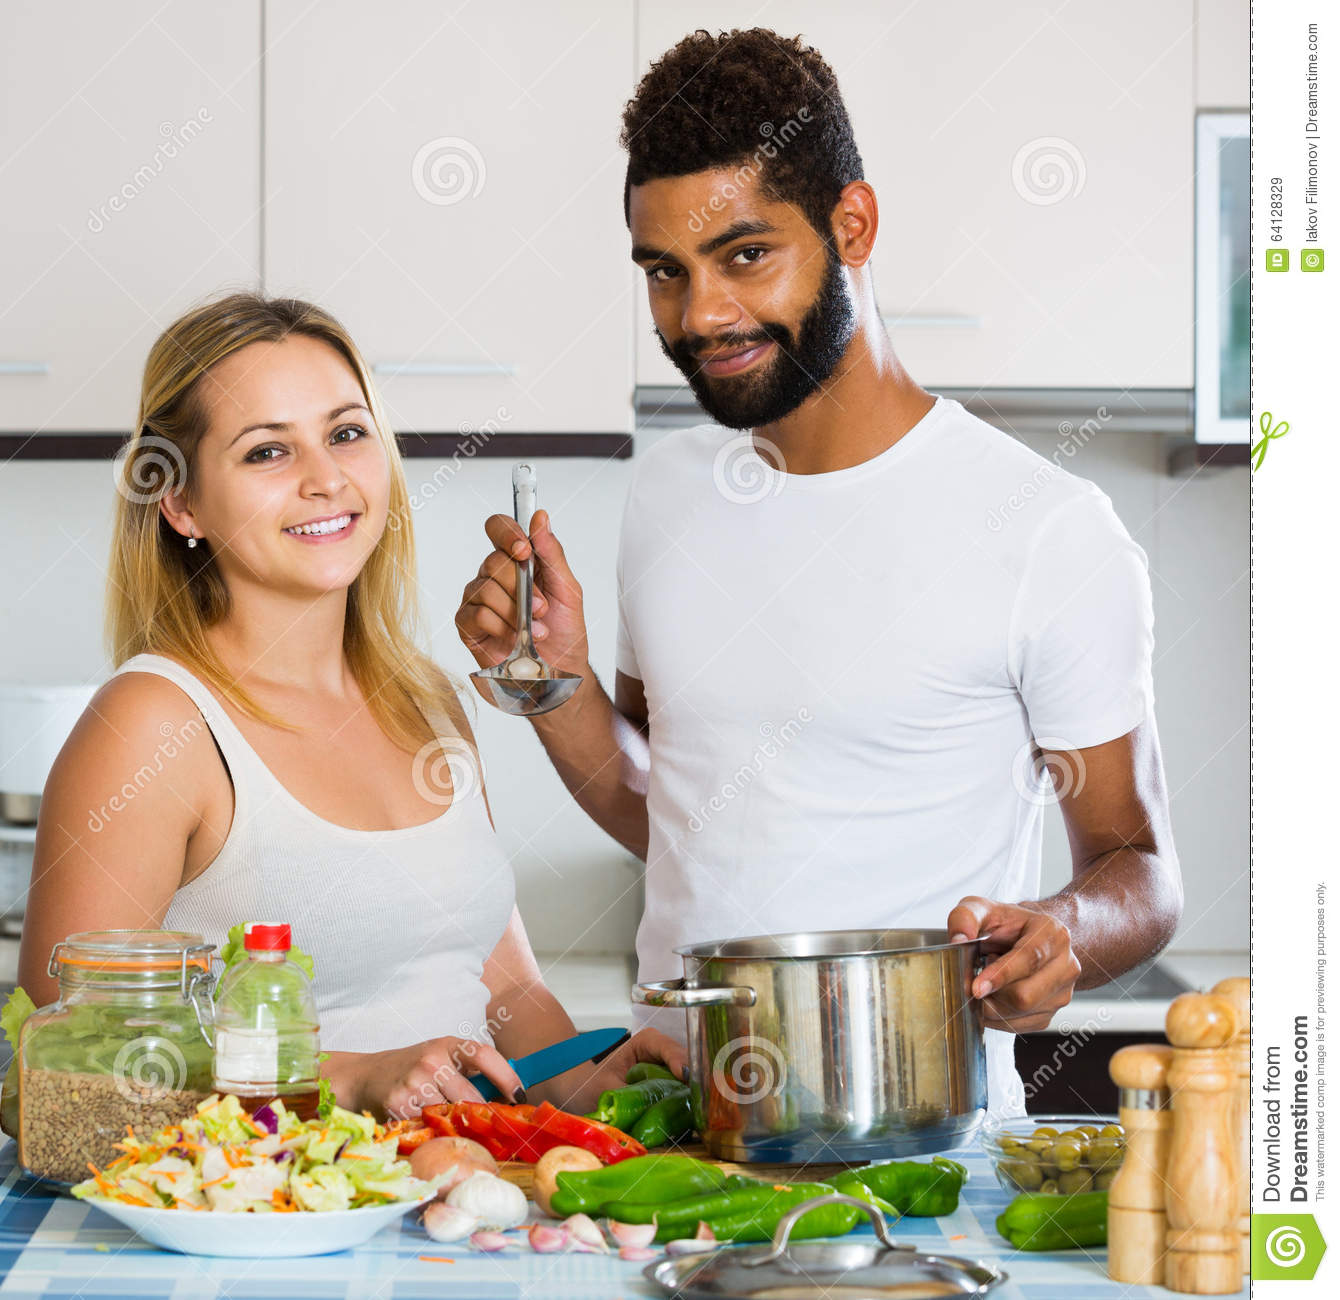 Afro Man And White Woman Cooking At Kitchen Table Stock Image ...